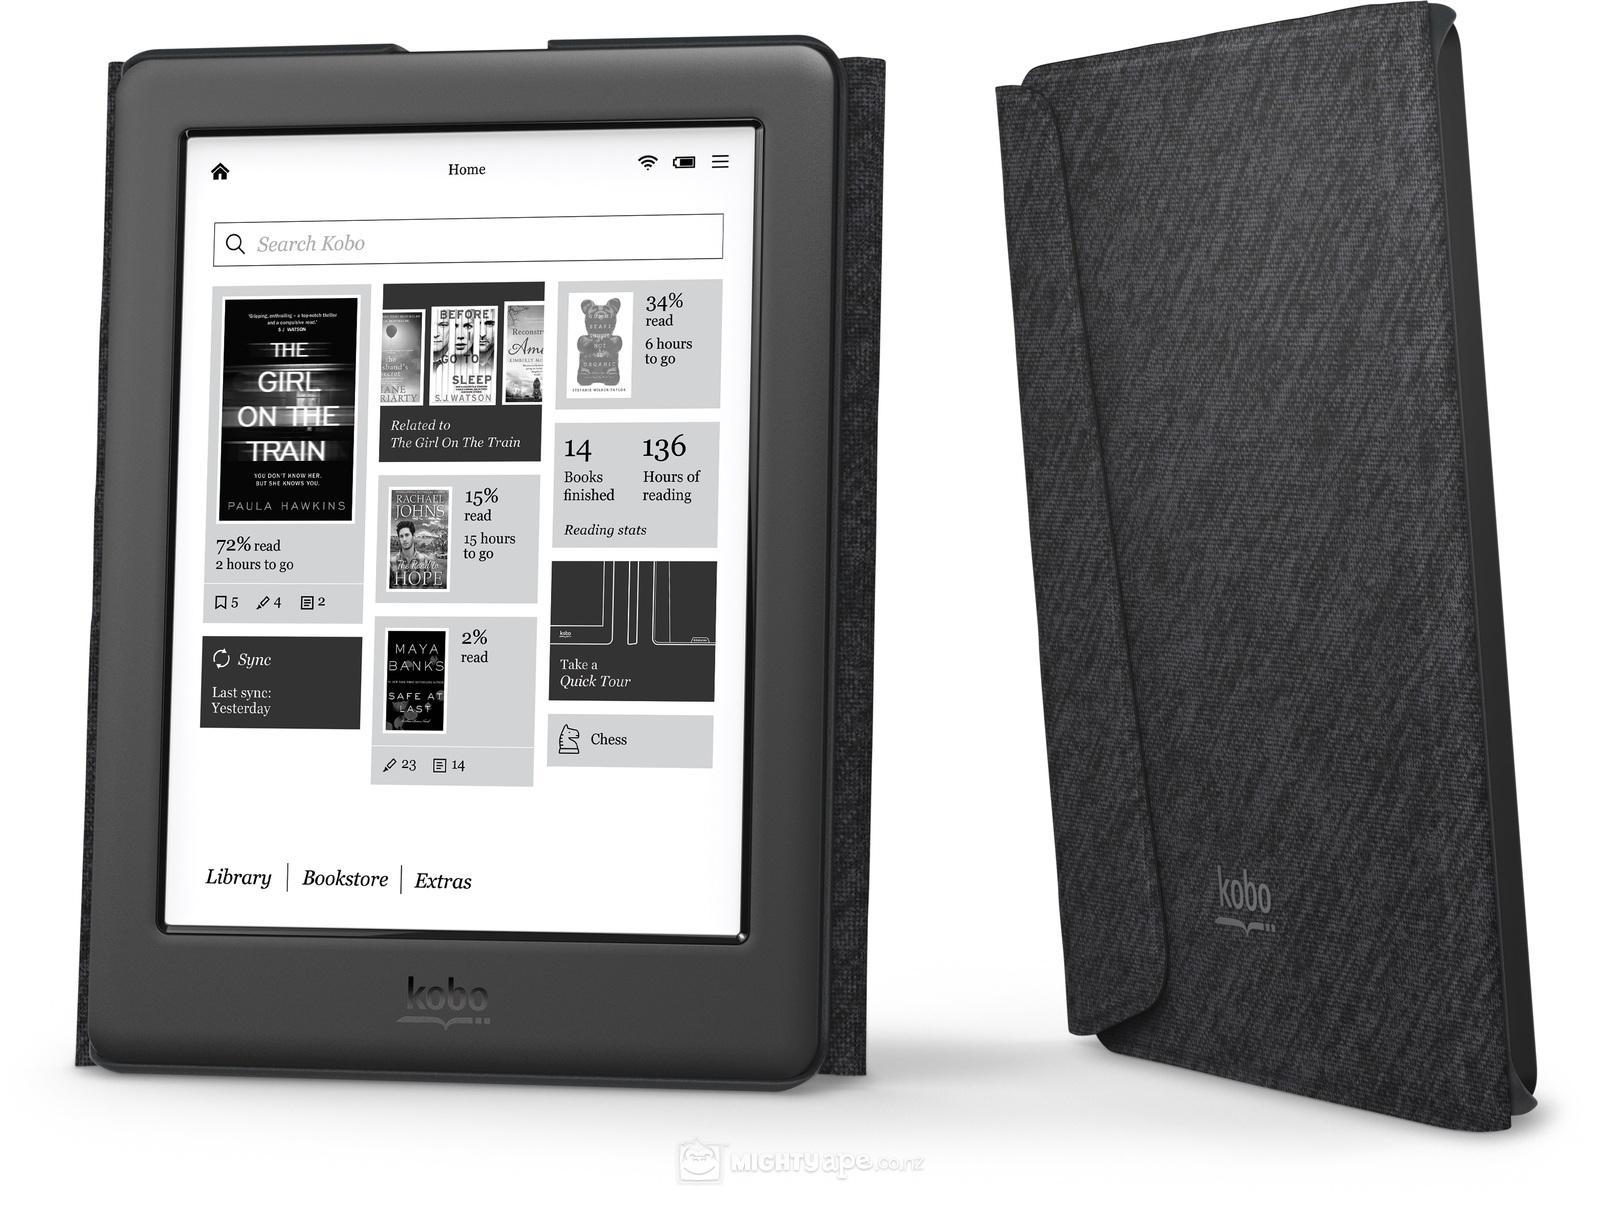 Kobo Glo HD review | Carry 2 000 books for just 200 grams